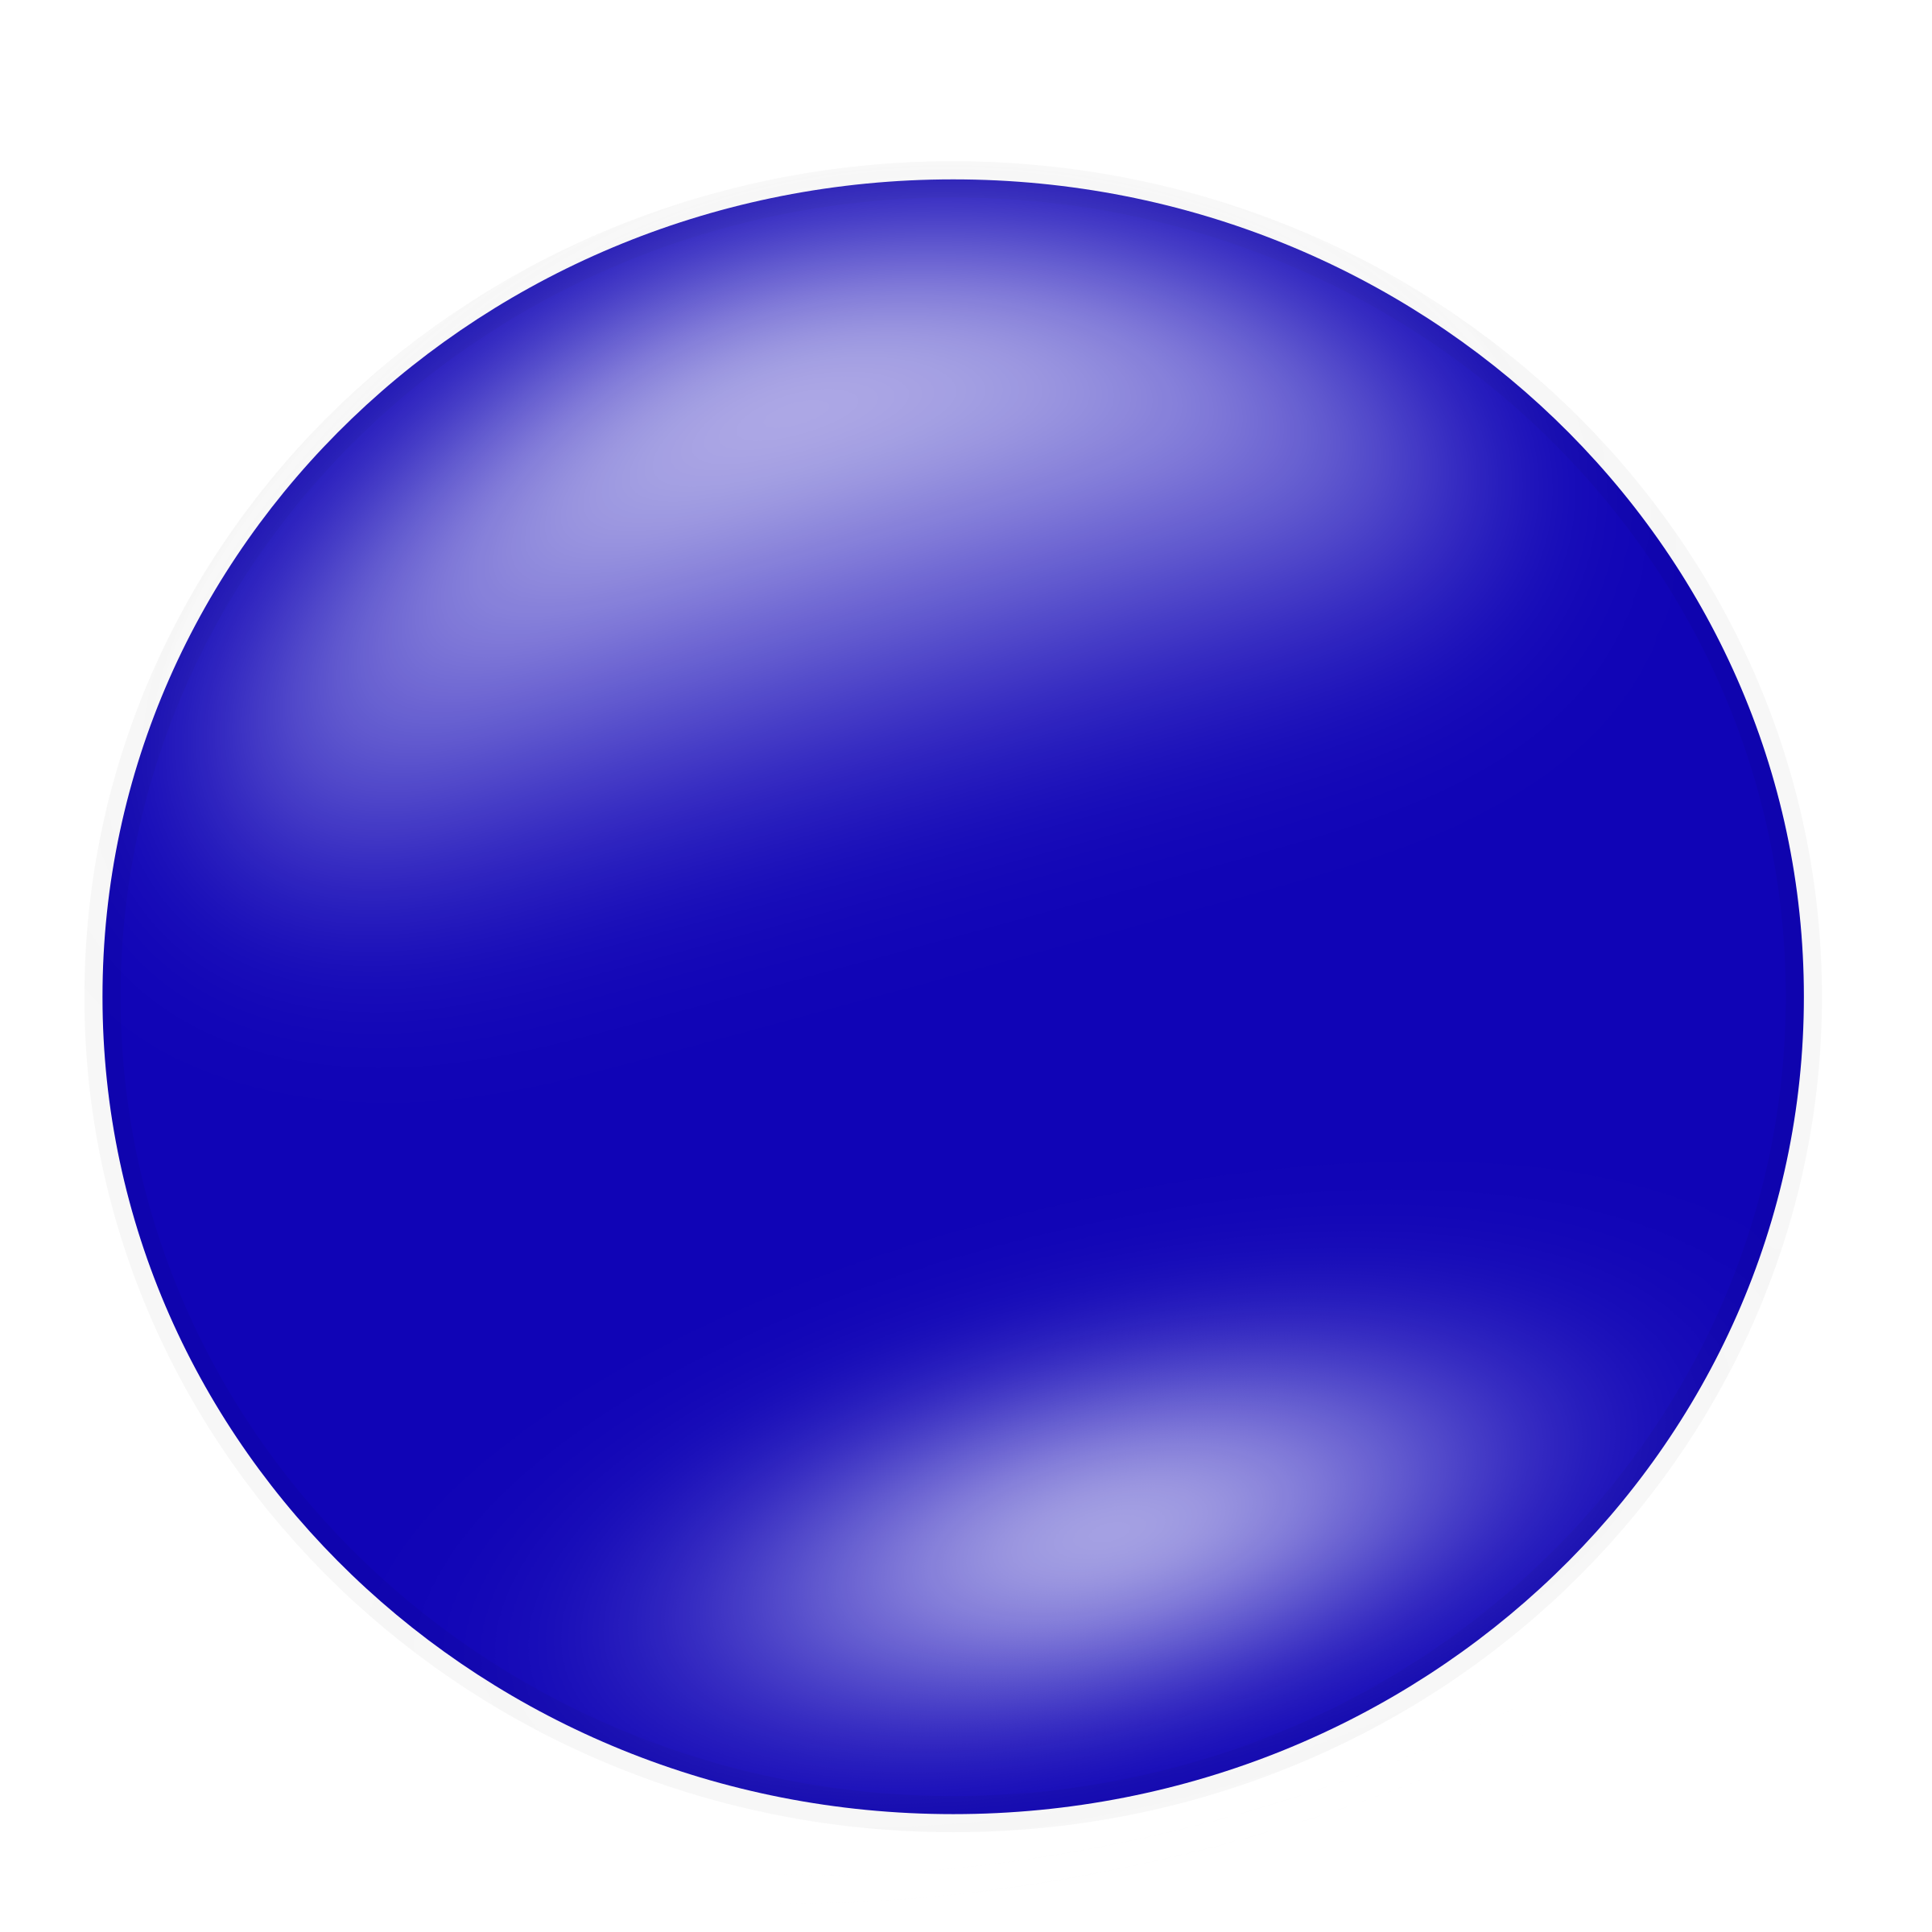 Blue Circle #h0HTbH - Clipart Kid